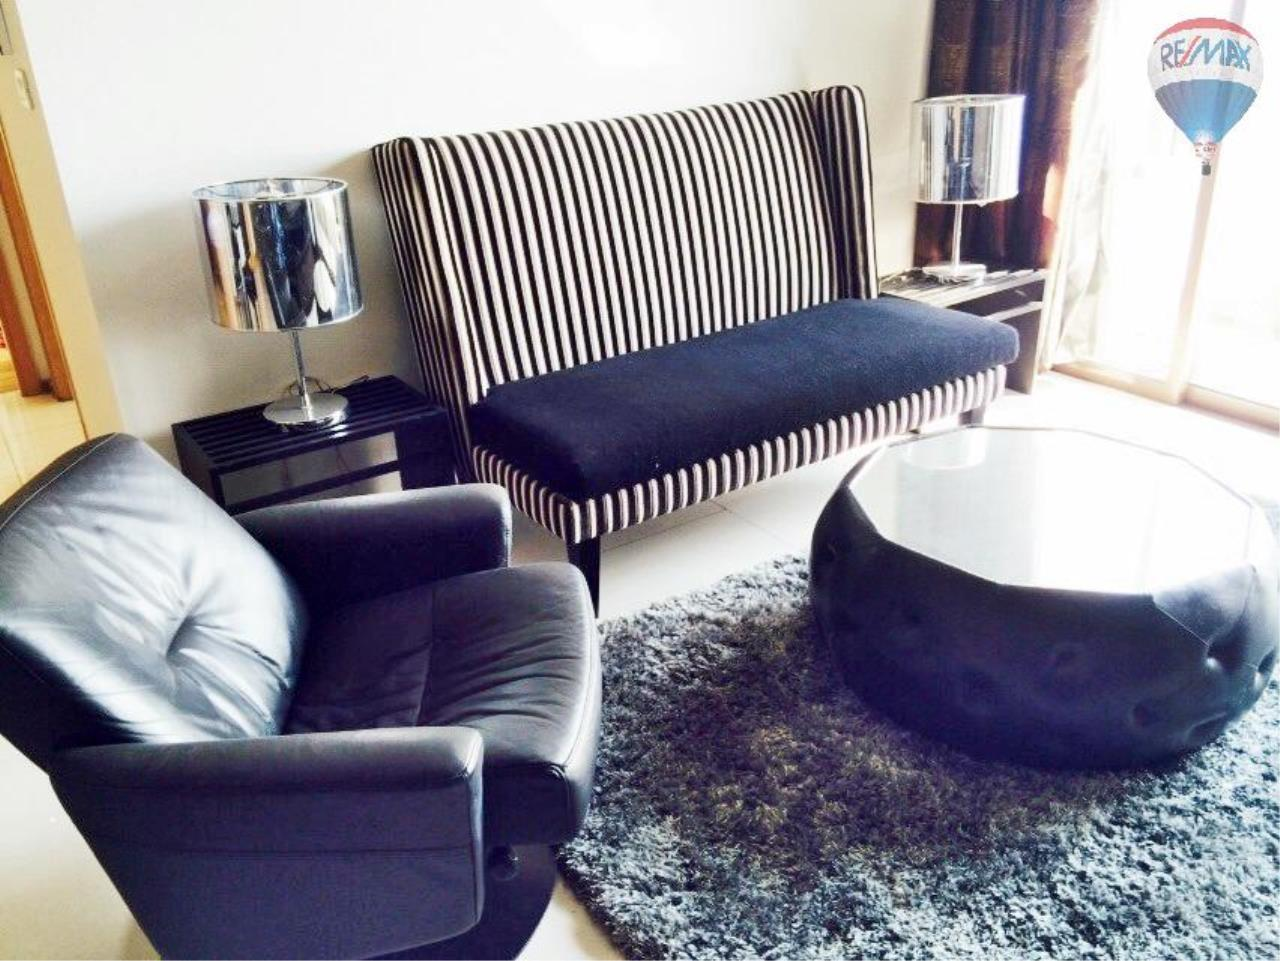 RE/MAX Properties Agency's Condominium for sale 1 bedroom 65 Sq.m. at Emporio Place 7